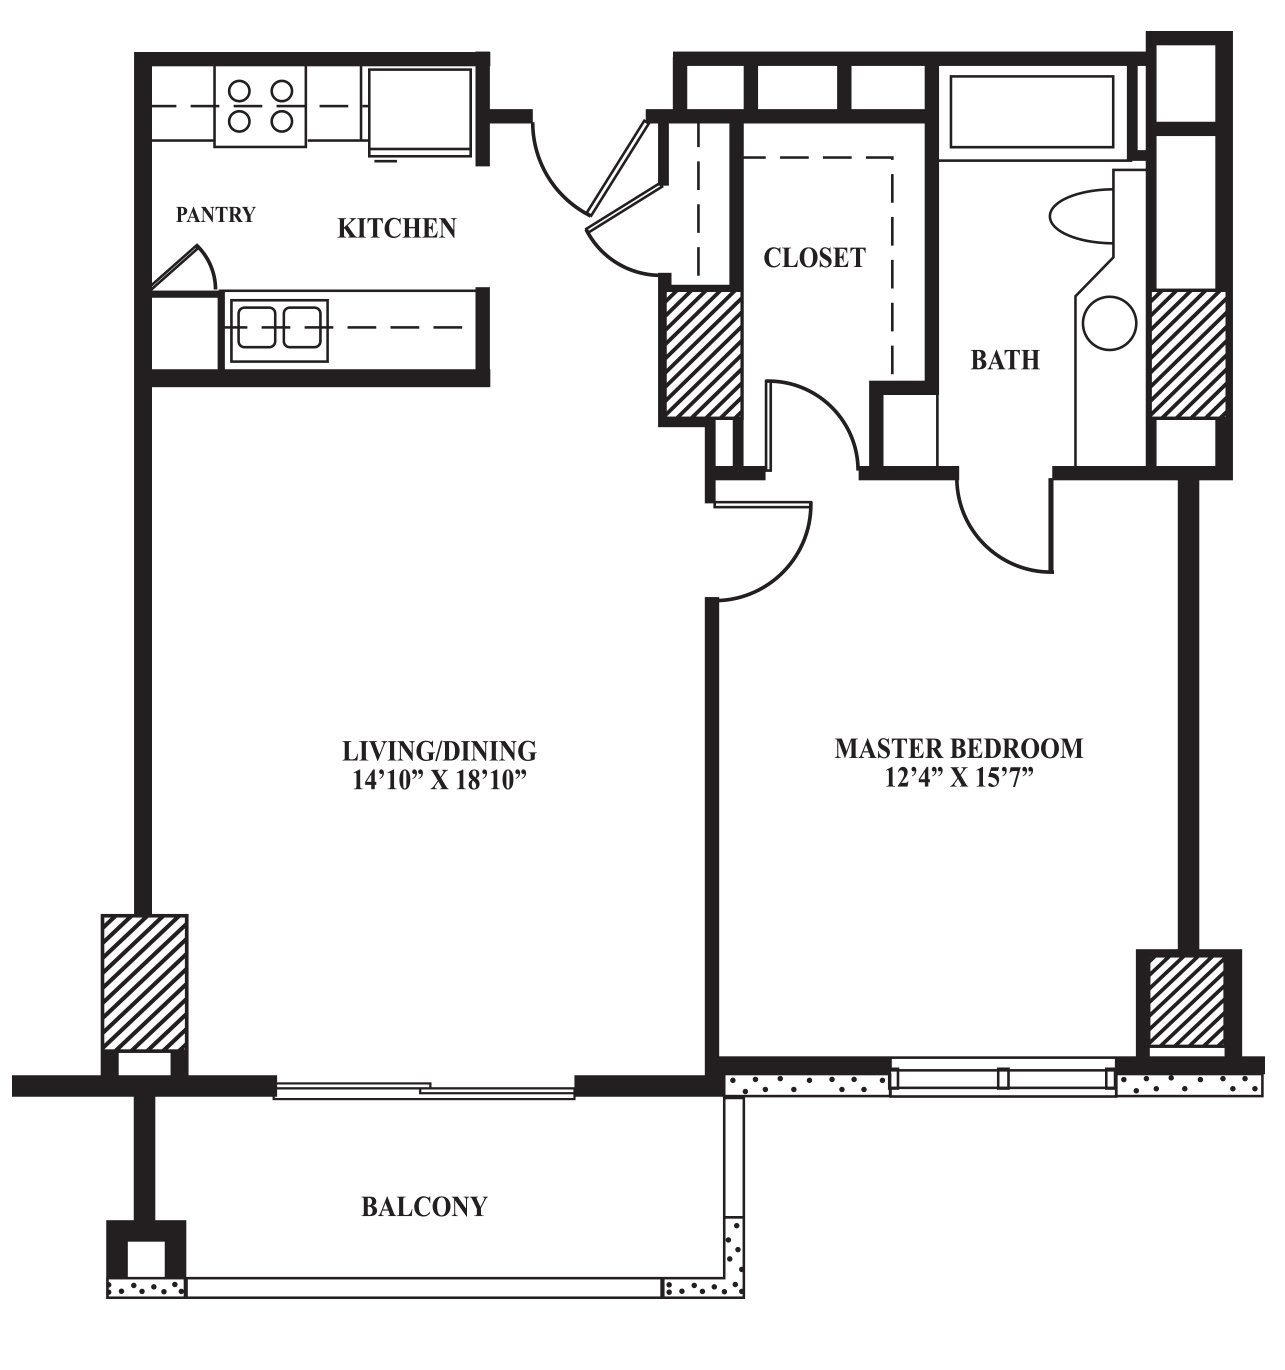 Master bathroom floor plans with walk in closet - photo#42